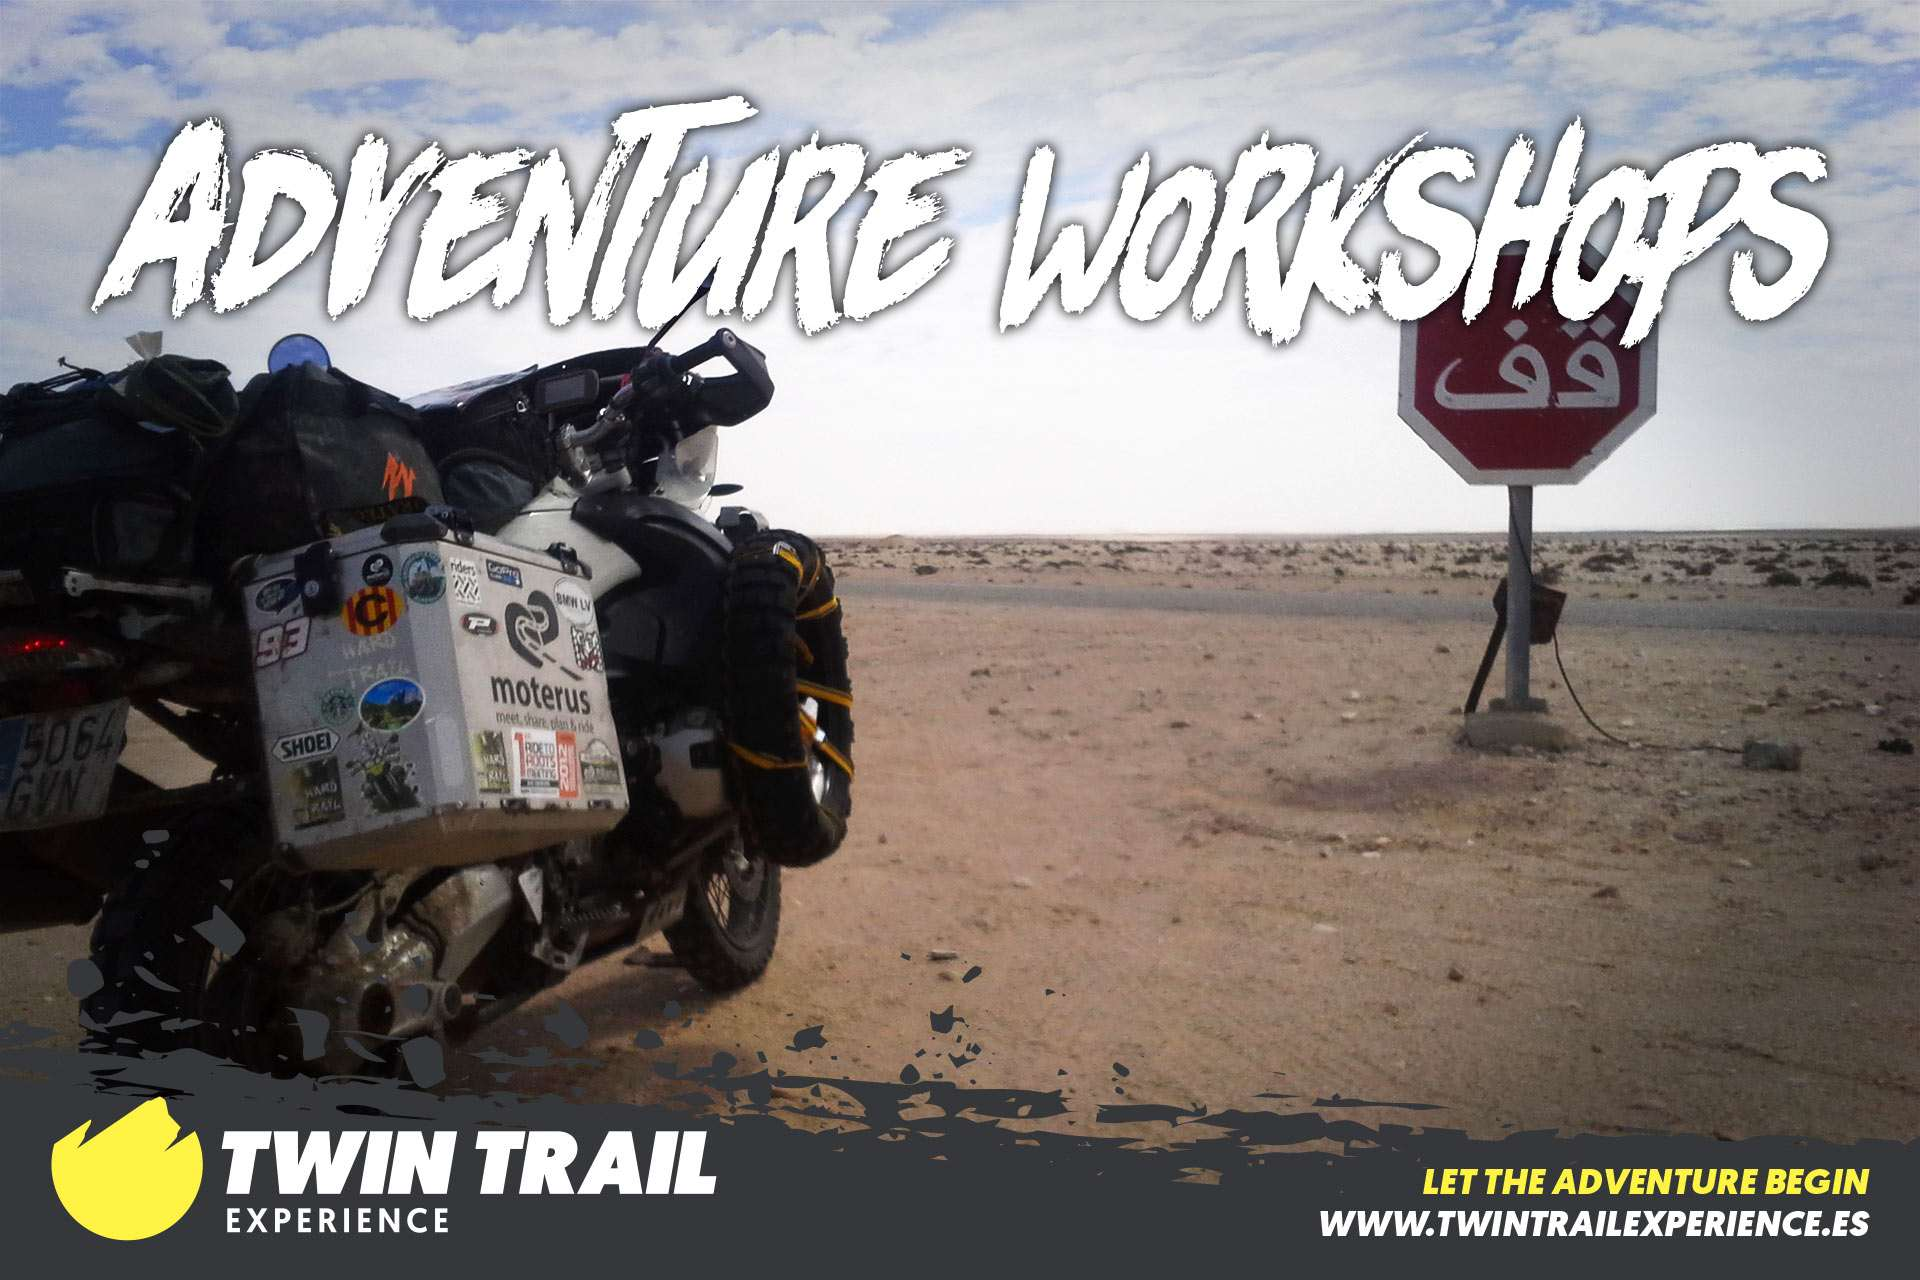 TwinTrail Adventure Workshops